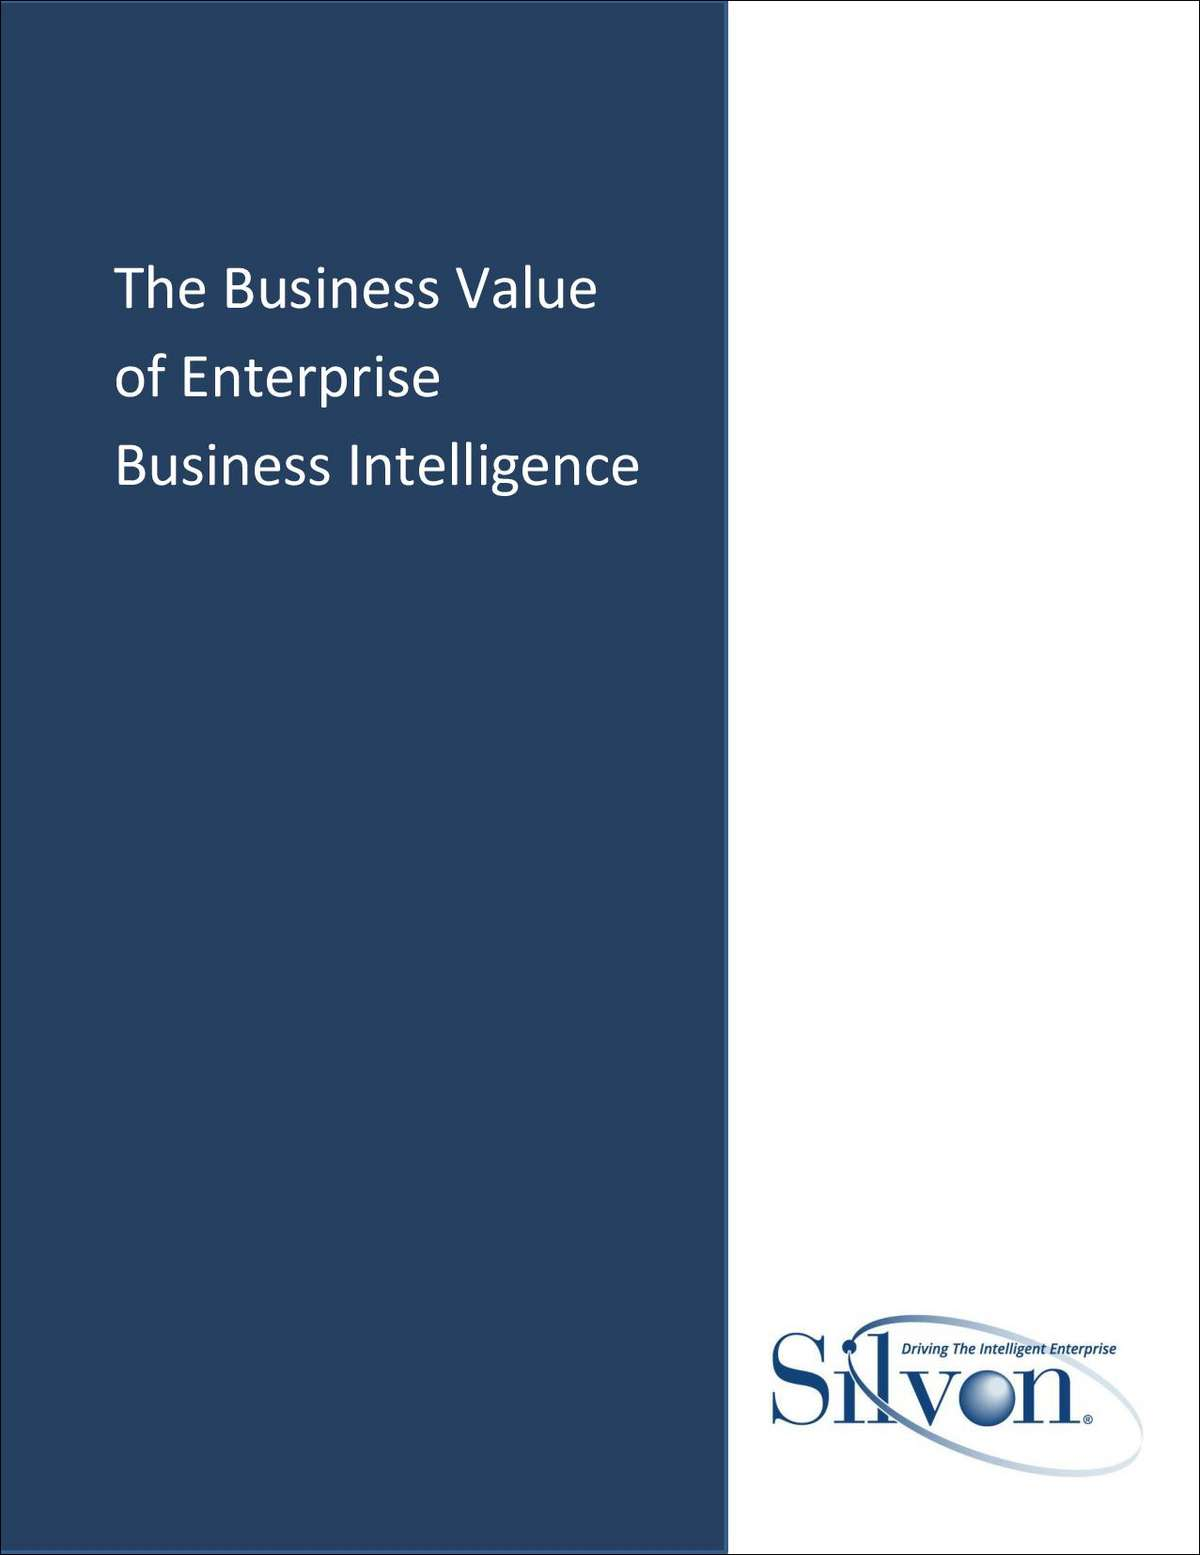 paper on business intelligence Data management & warehousingwhite paper the business case for business intelligence david m walker version: 10 d.